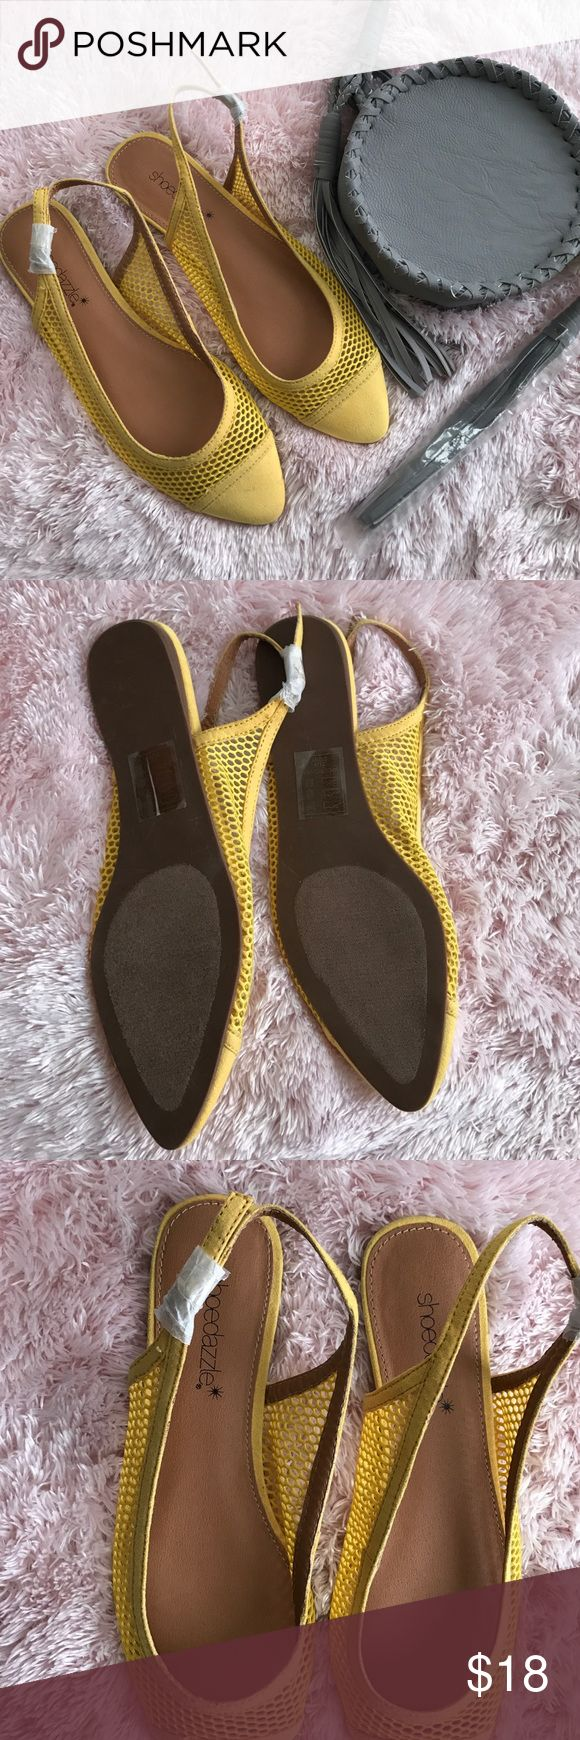 Shoedazzle flats NWOT yellows shoedazzle flats beautiful color great for summer Shoe Dazzle Shoes Flats & Loafers